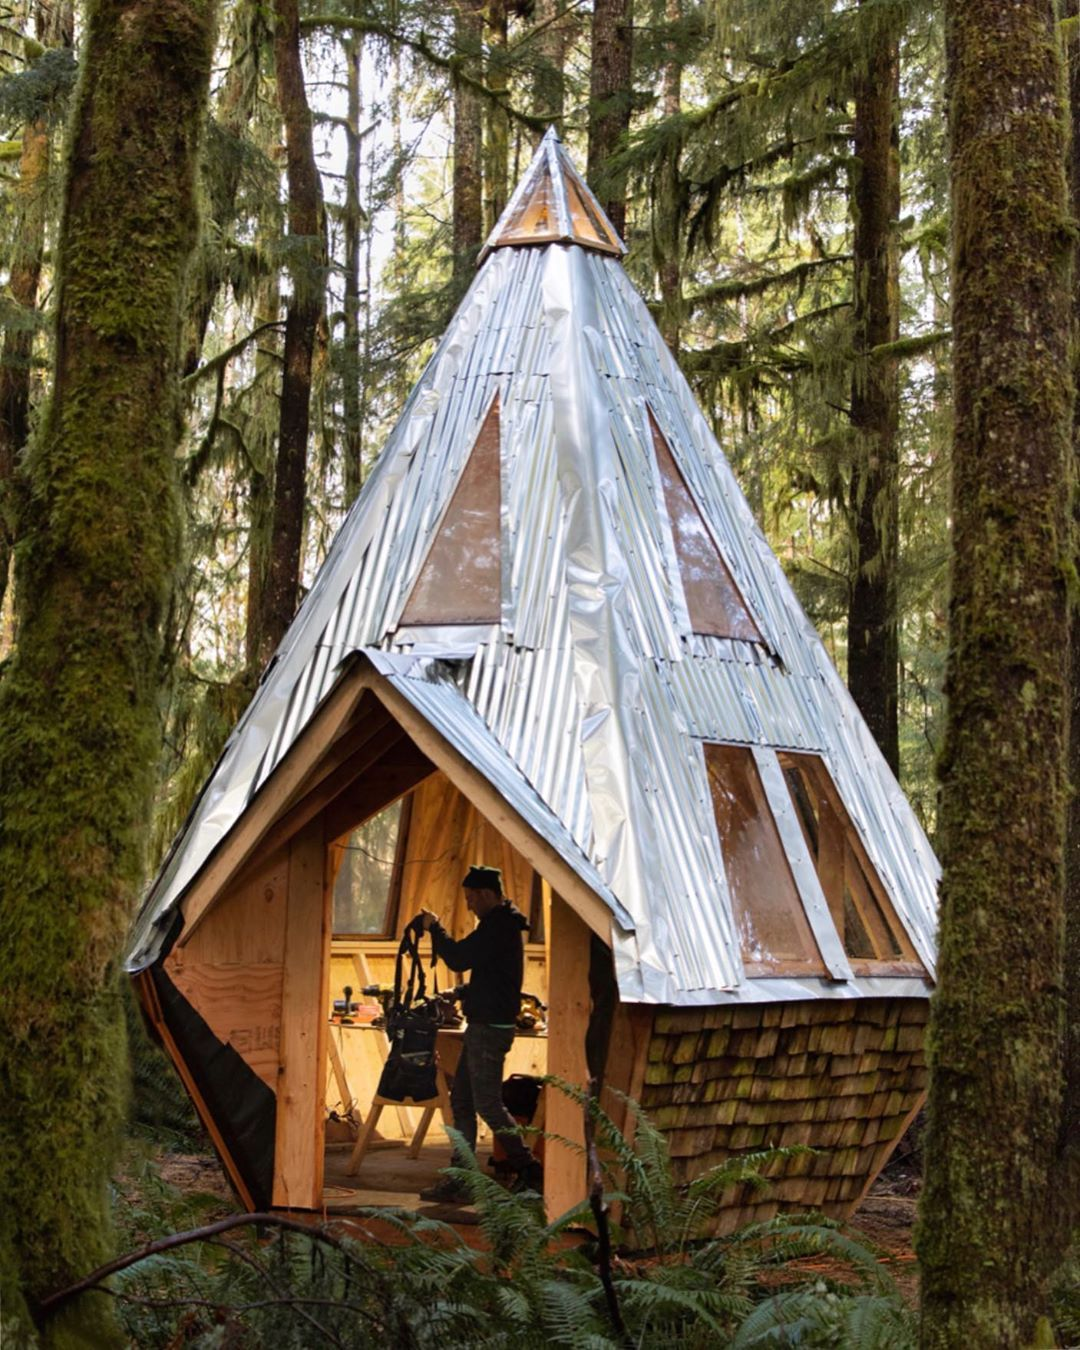 Pin by Rachel Michaels on Nature, paysages | Small house, Tiny house cabin,  Building a cabin